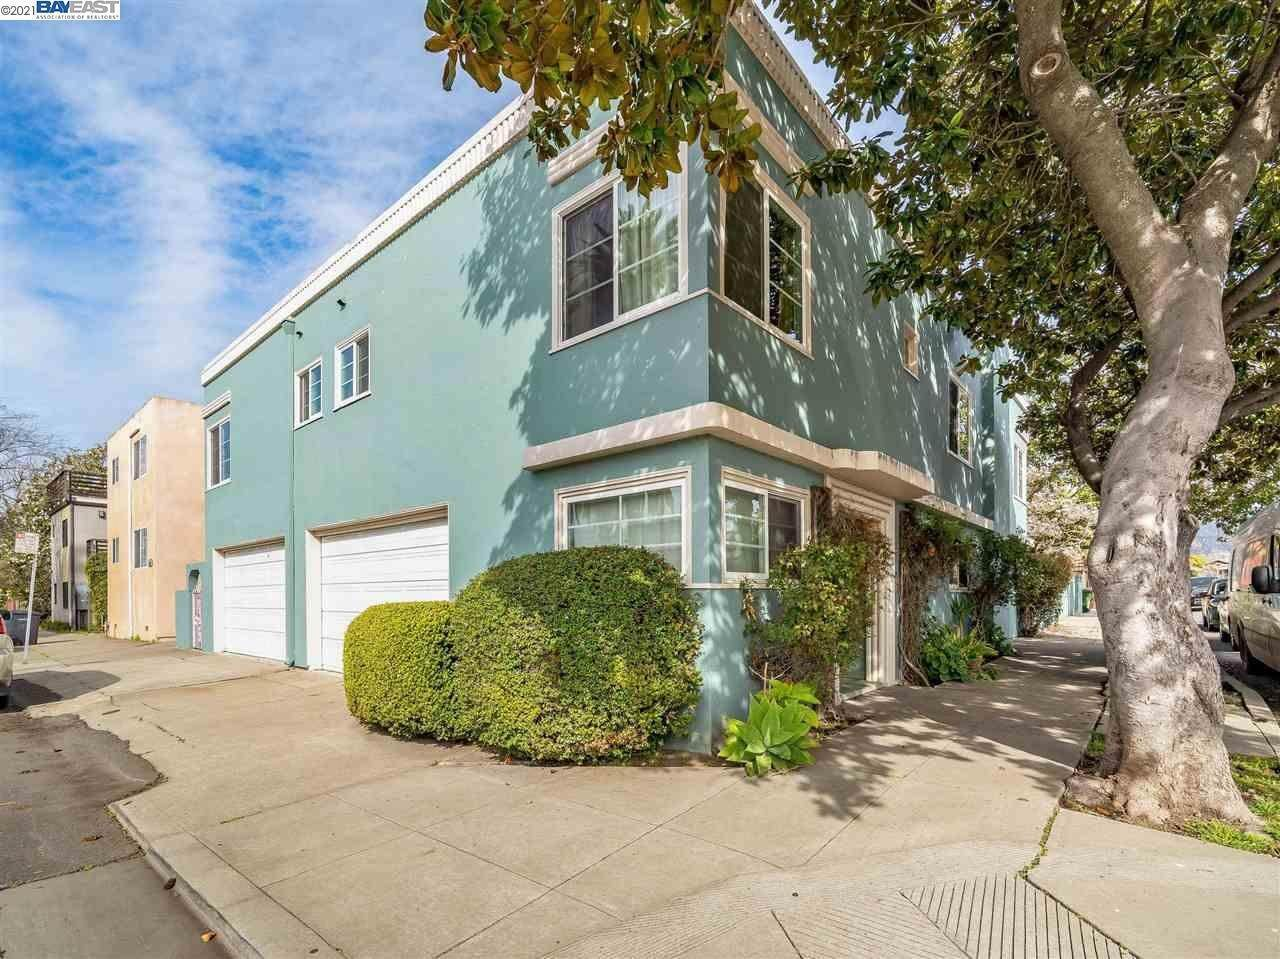 Multi-Family Homes for Sale at 1135 Page Street Berkeley, California 94702 United States